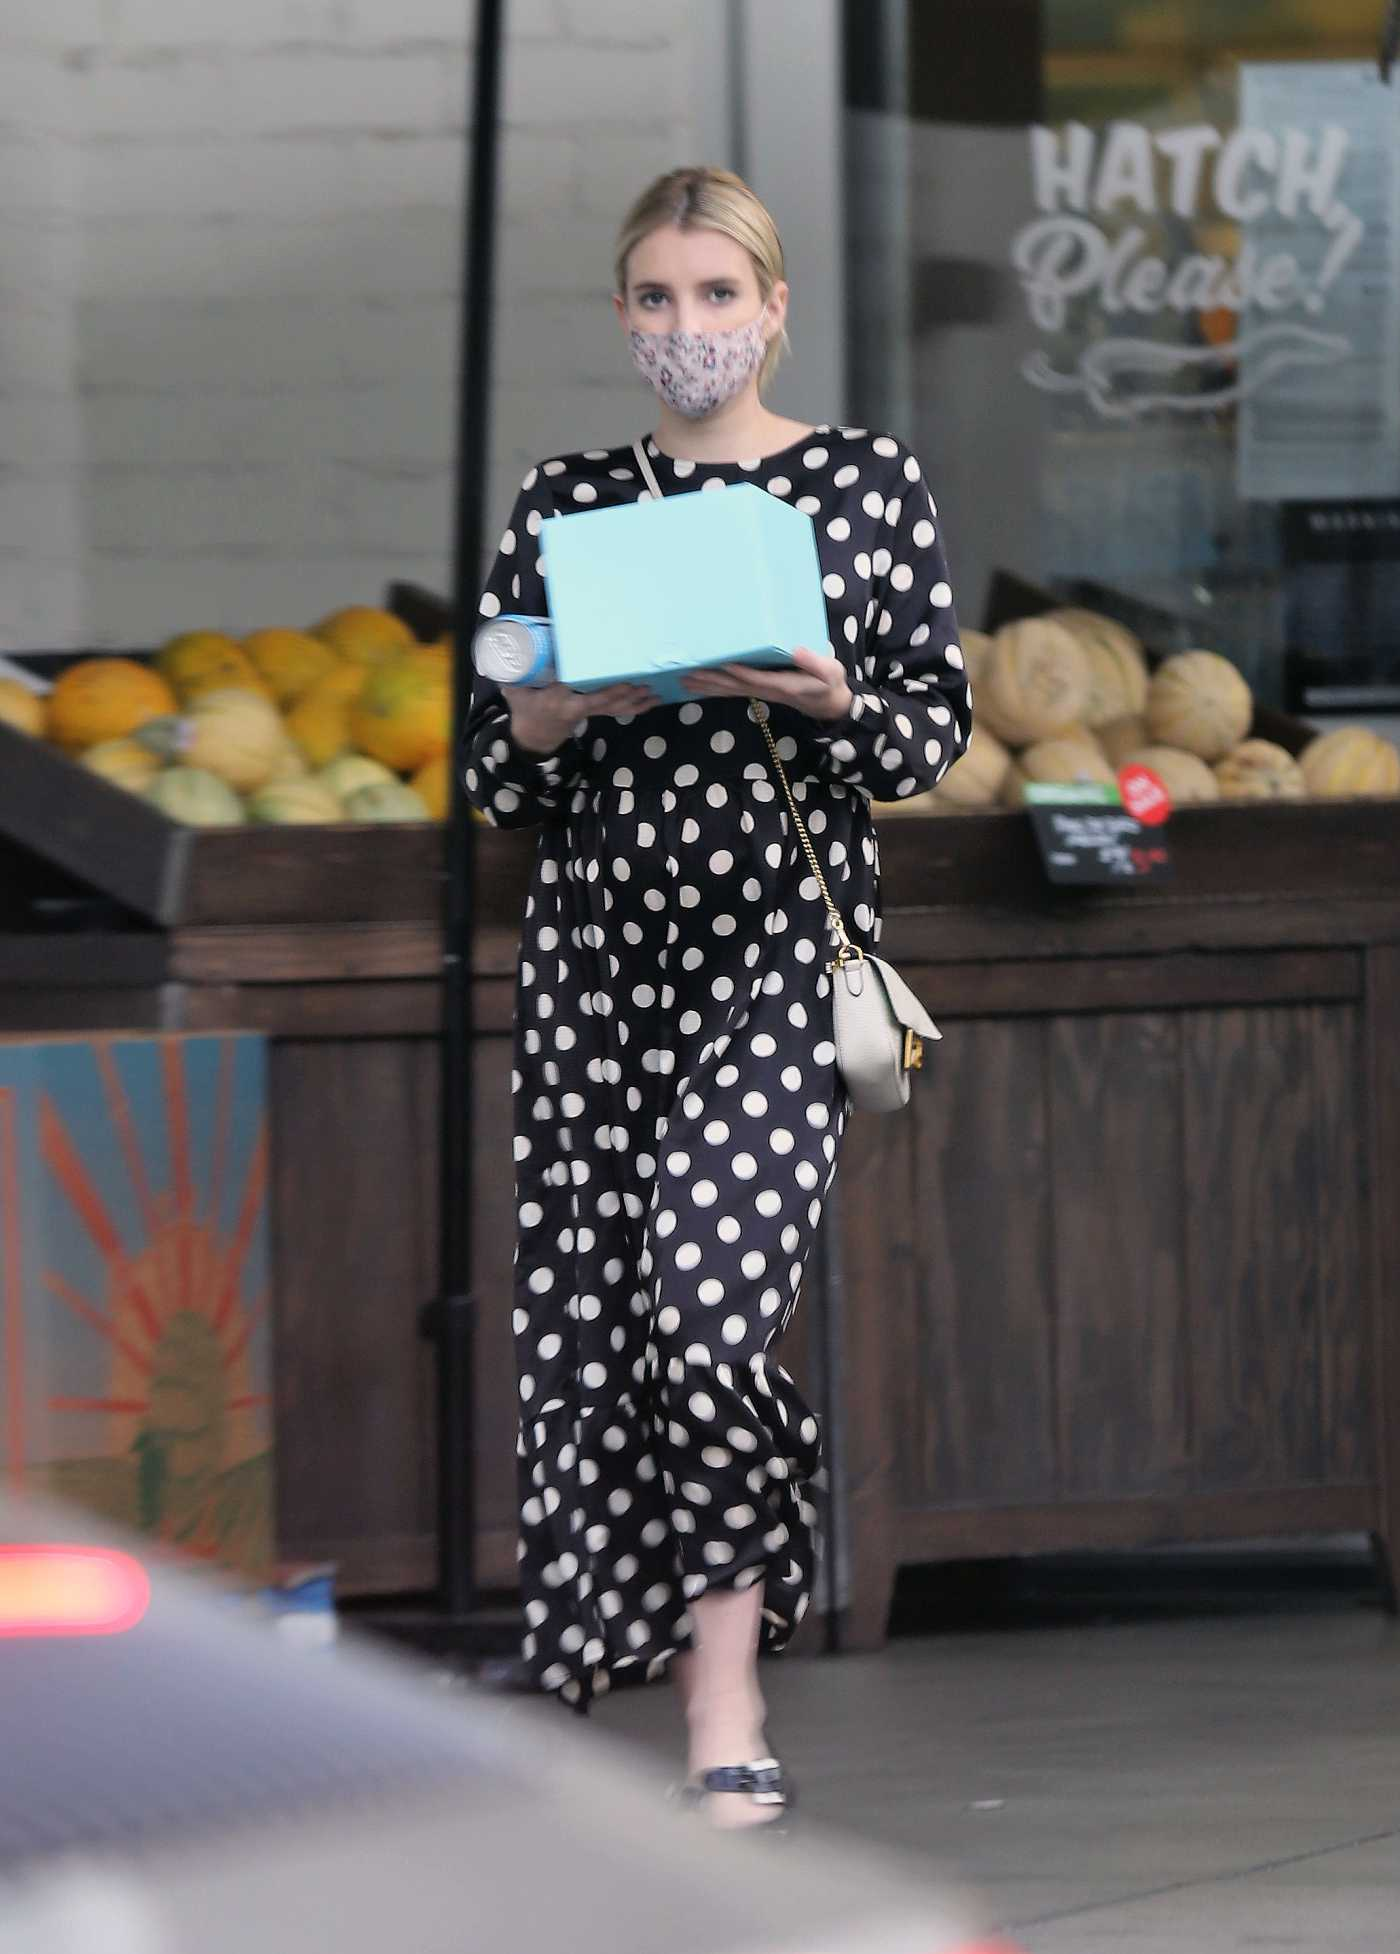 Emma Roberts in a Polka Dot Dress Goes Shopping in Los Angeles 09/08/2020